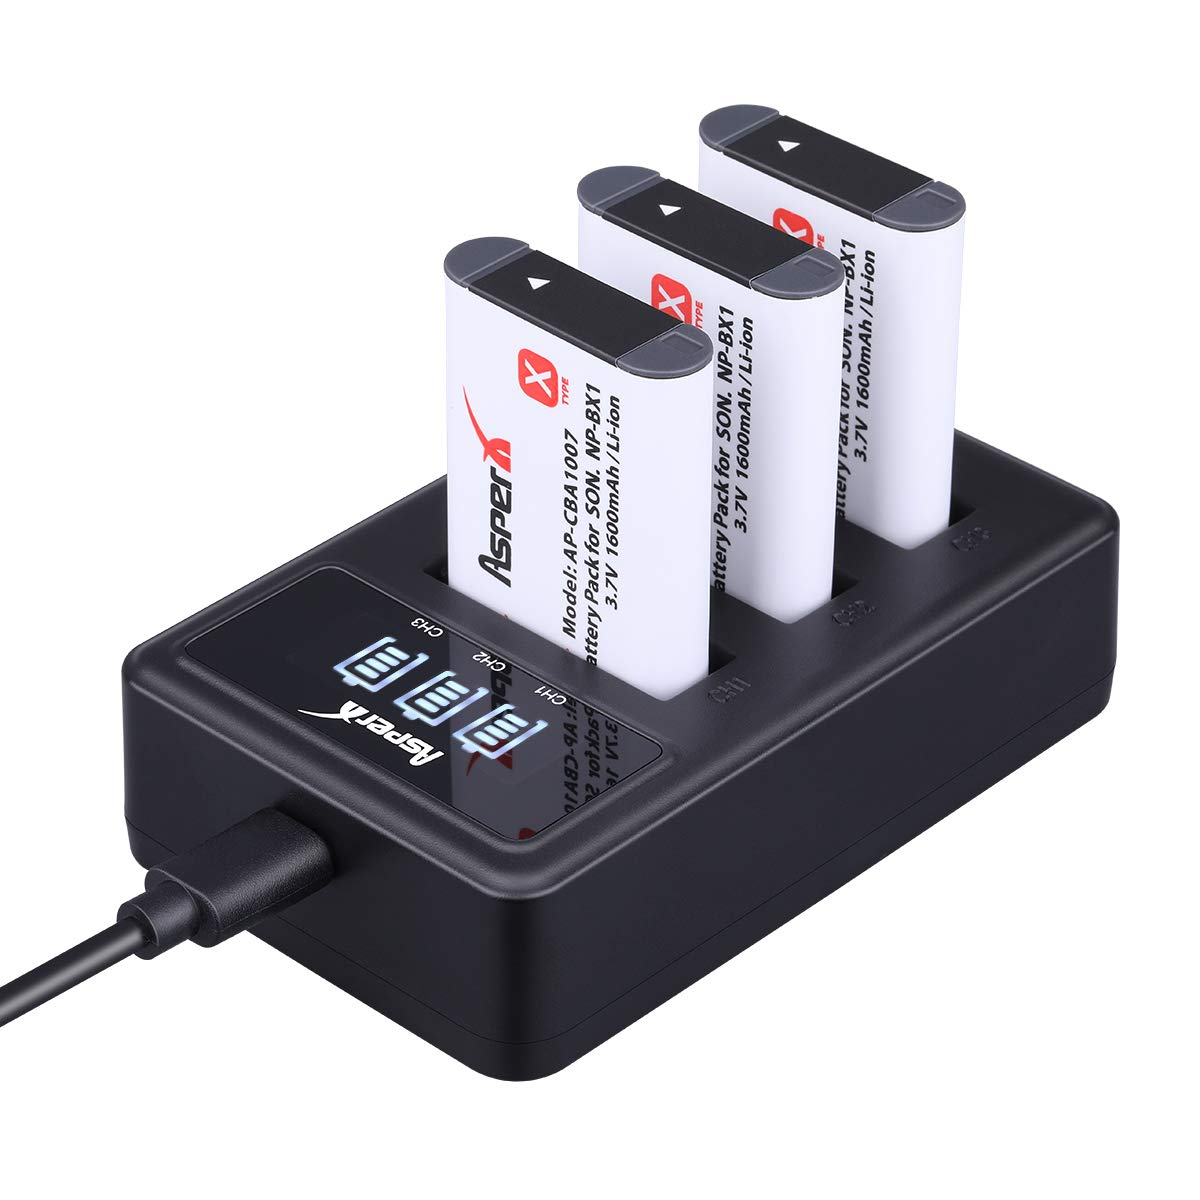 NP-BX1 Camera Battery-Asperx 3 Pack NP-BX1 Batteries and Charger Compatible with Sony DSC-RX100M III, DSC-RX1, DSC-RX100 V, DSC-HX300, HDR-CX240, HDR-PJ275, HDR-AS30V, HDR-CX440, HDR-CX40 Cameras by AsperX